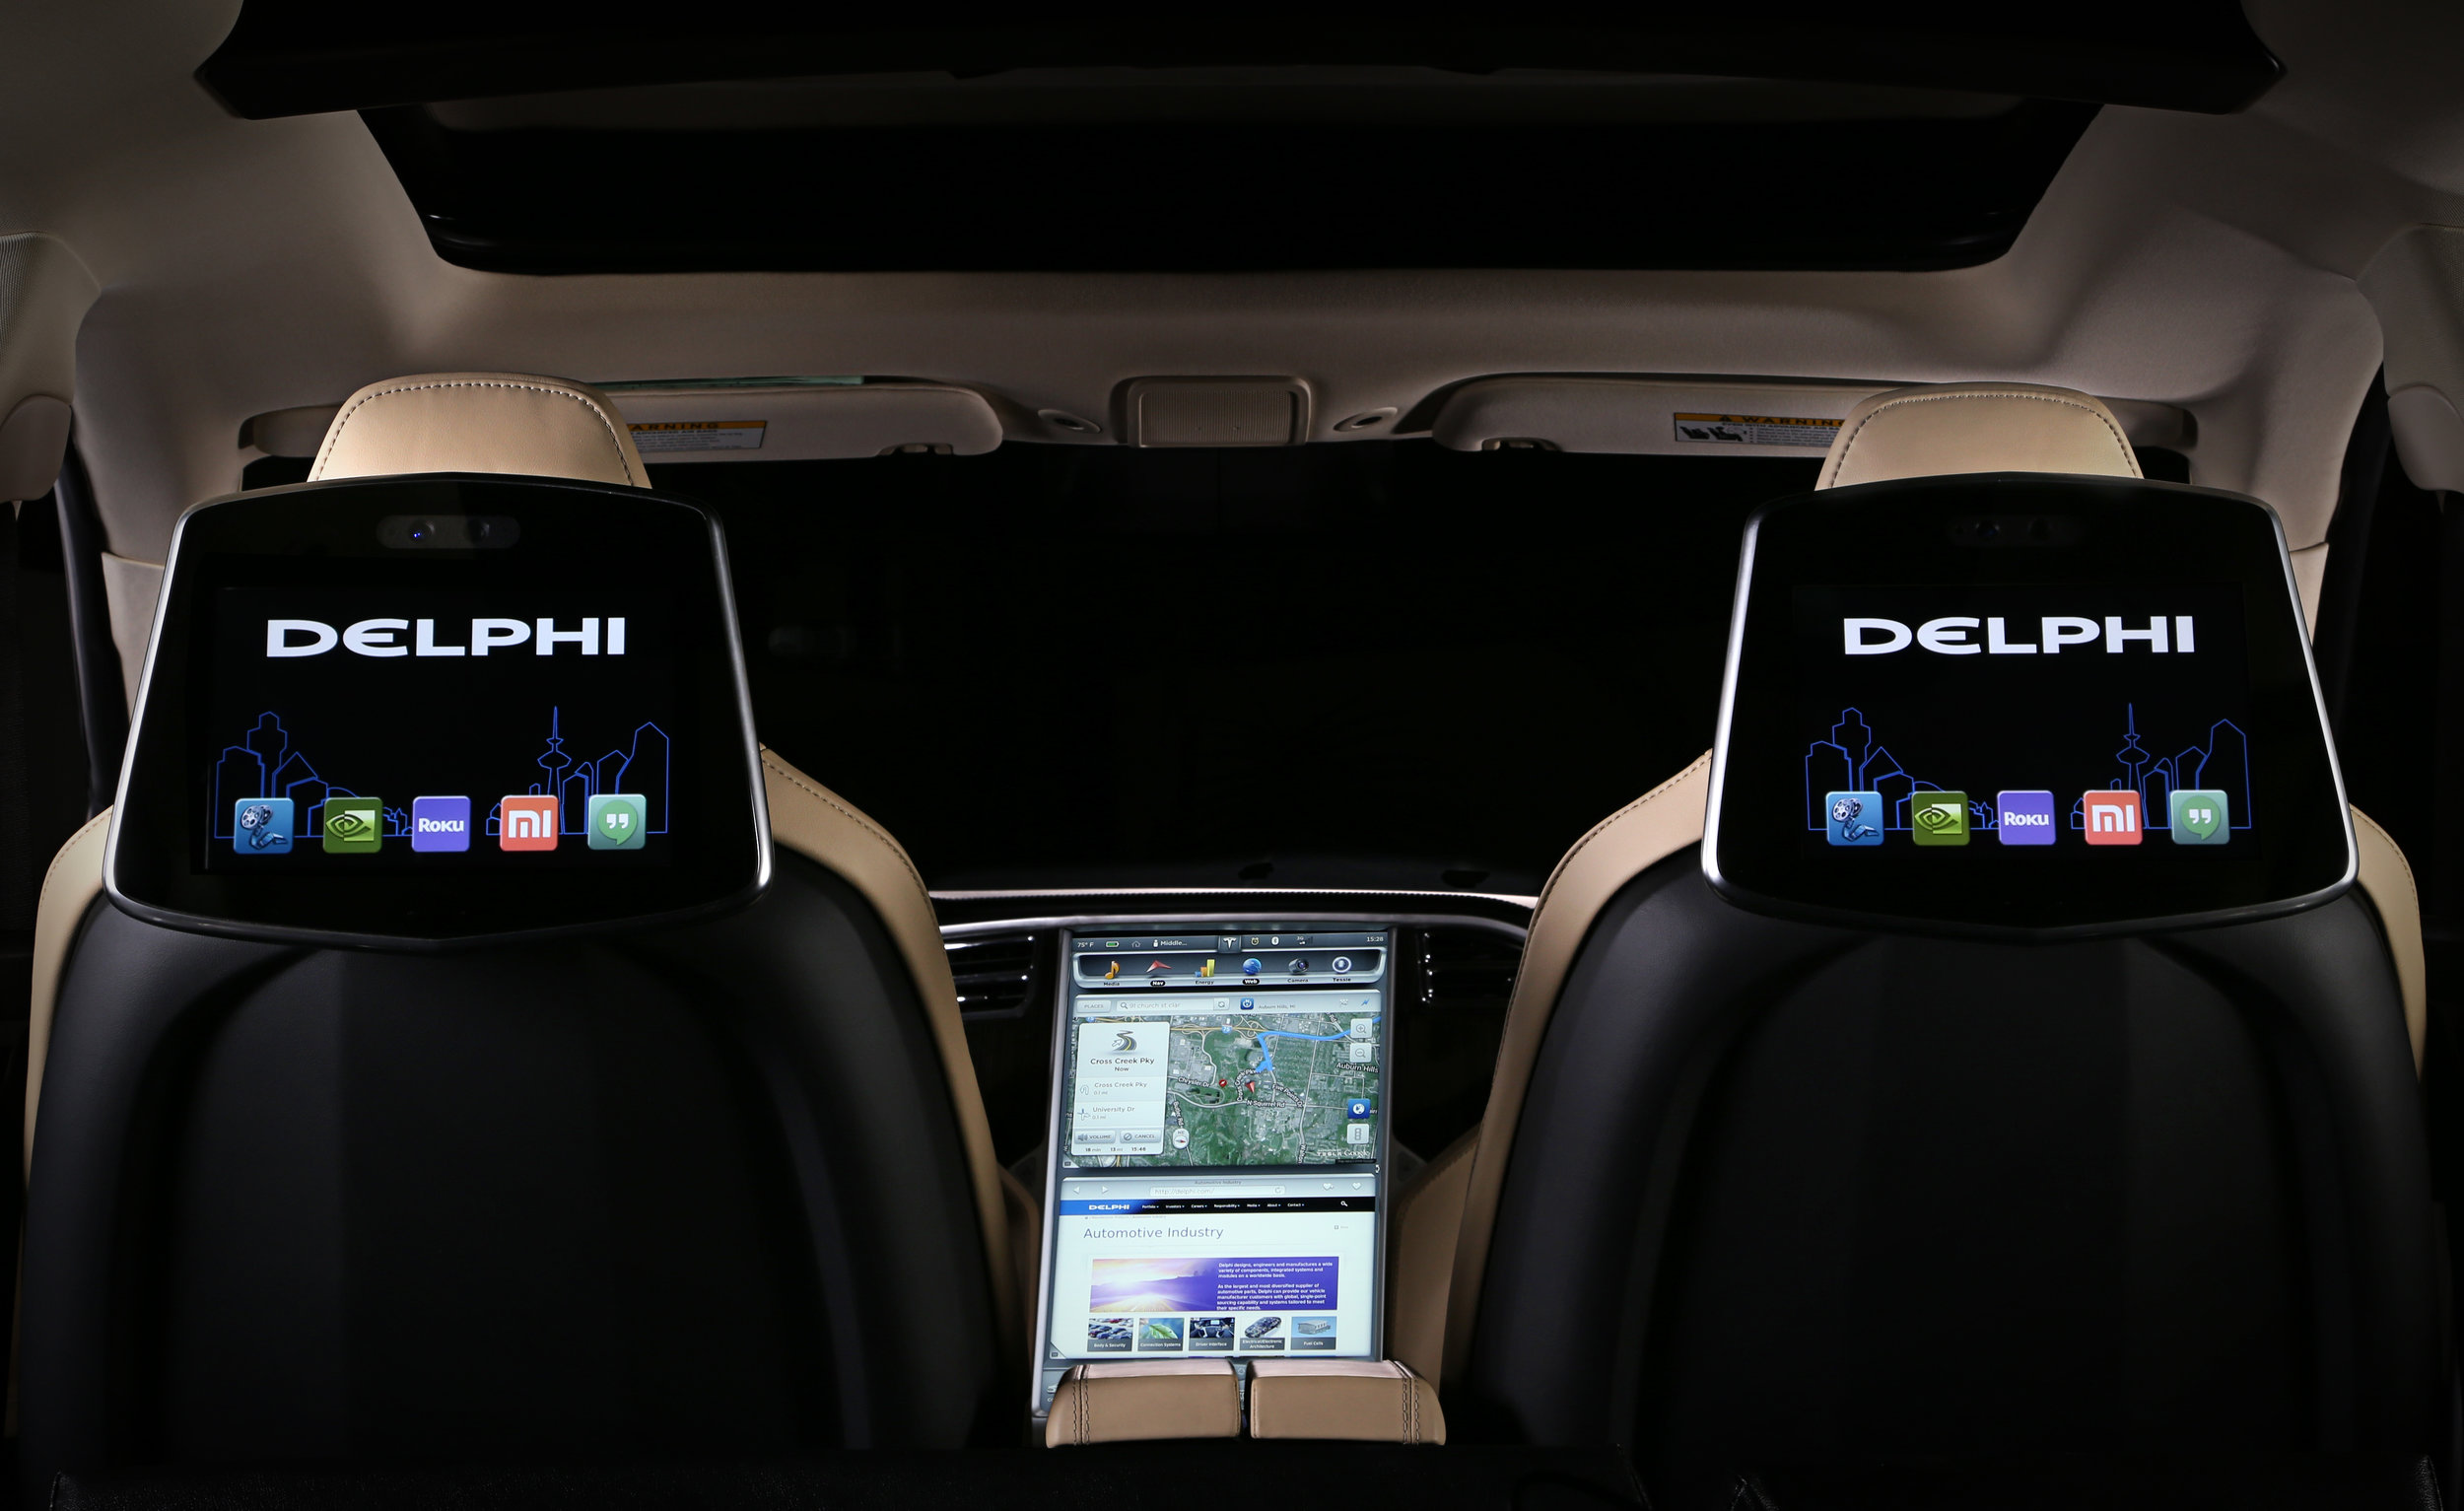 Copy of delphi car systems manufactured PCBA